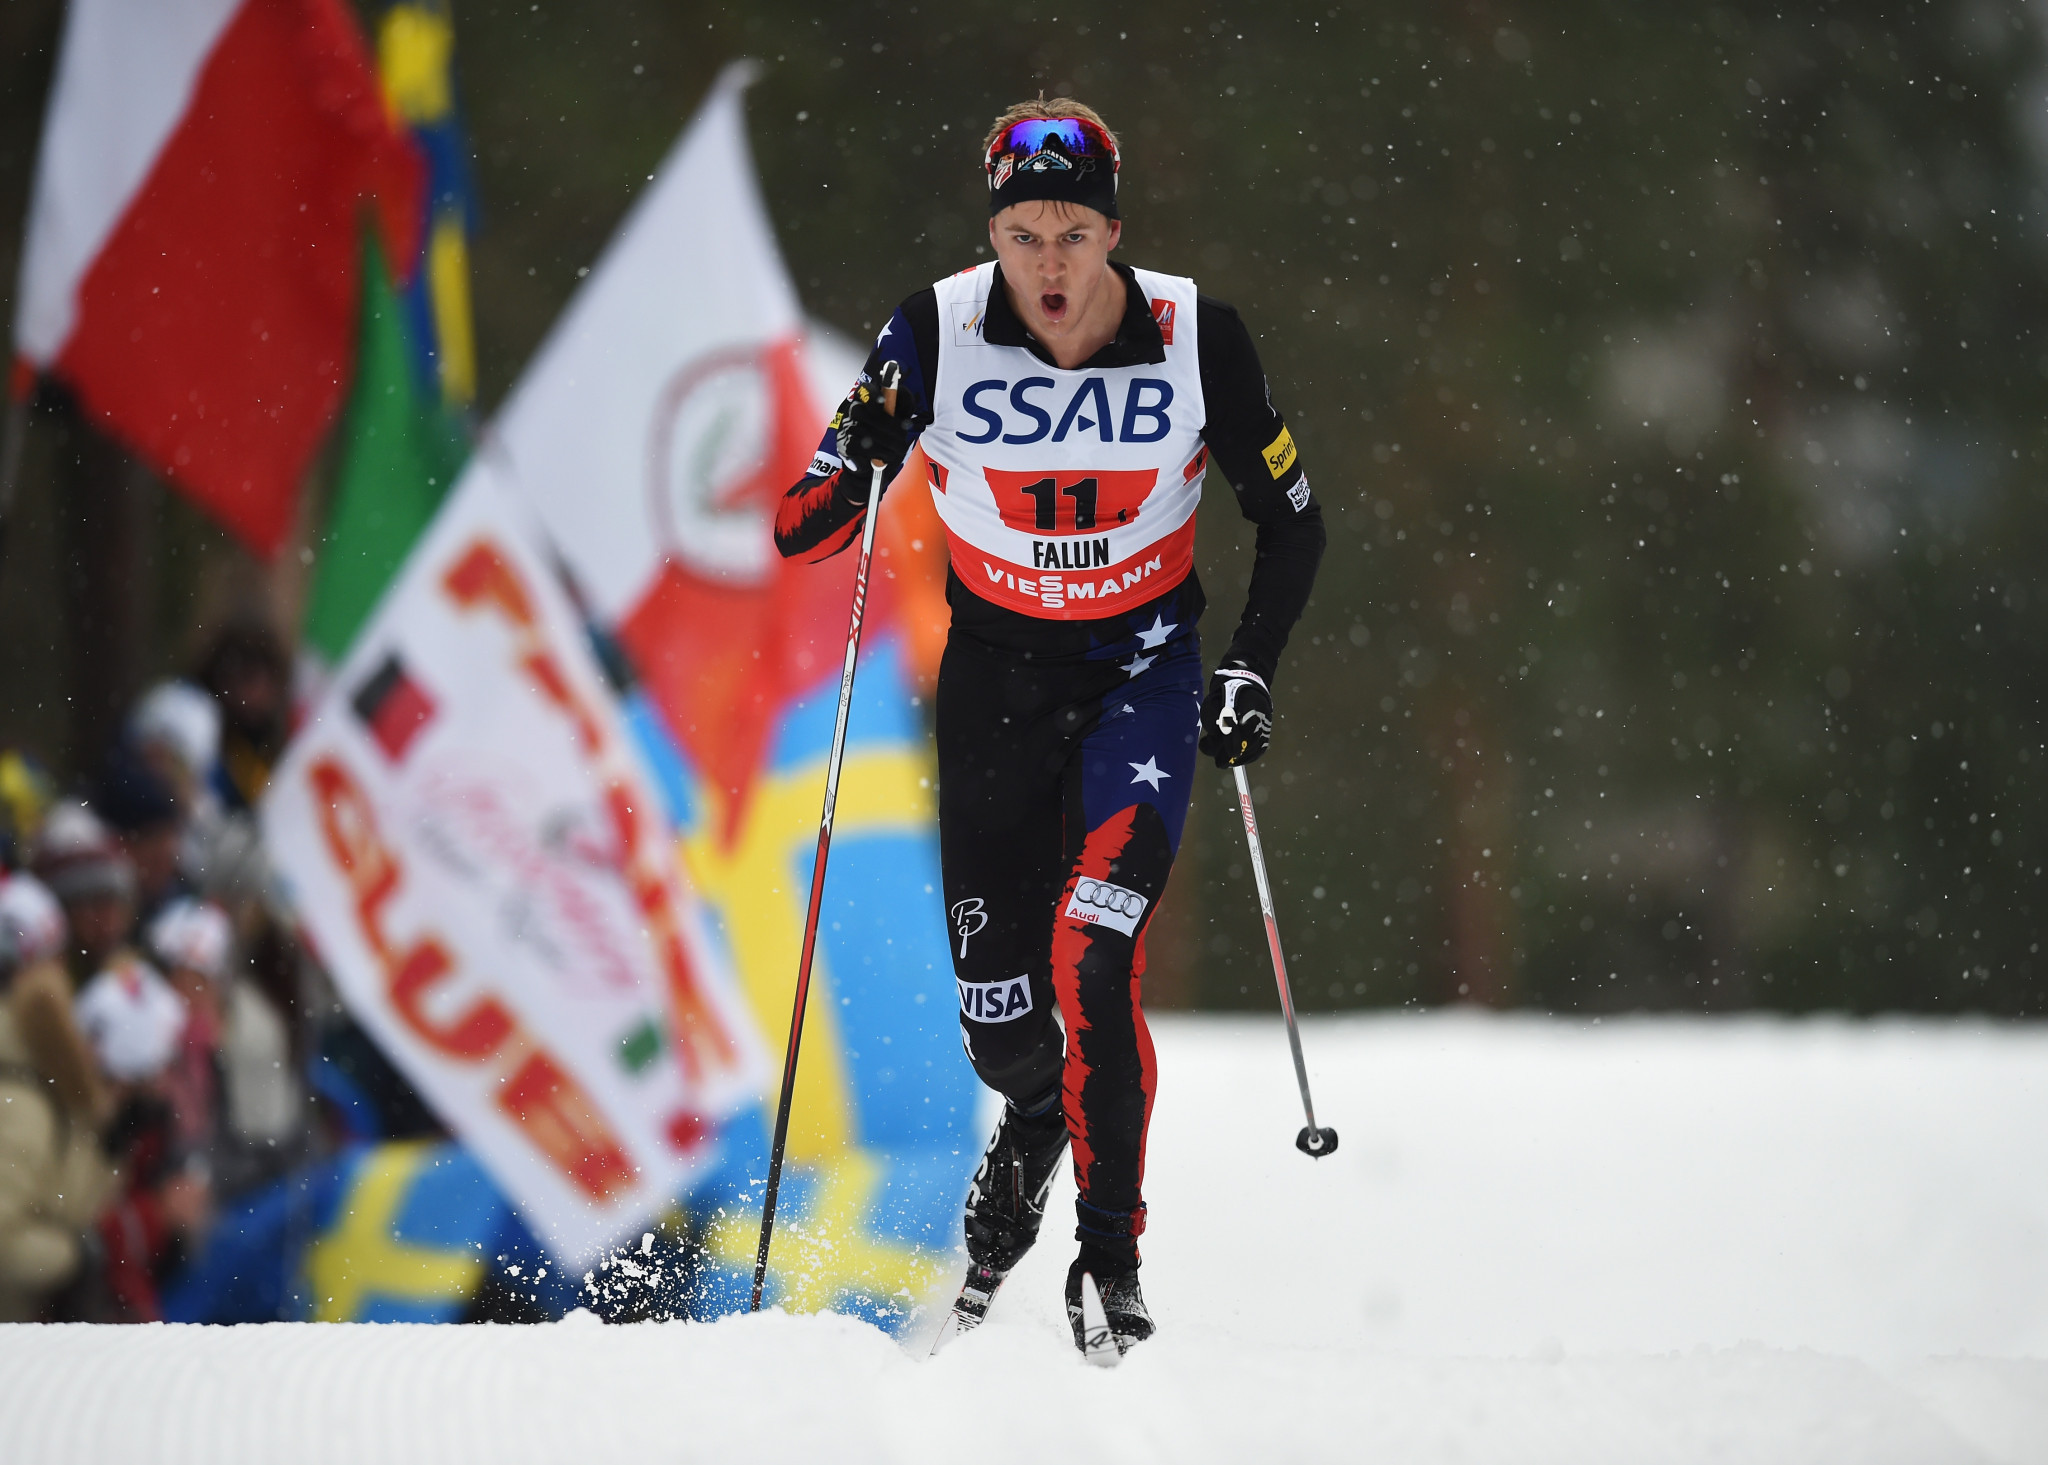 American cross-country skier Bjornsen calls time on career